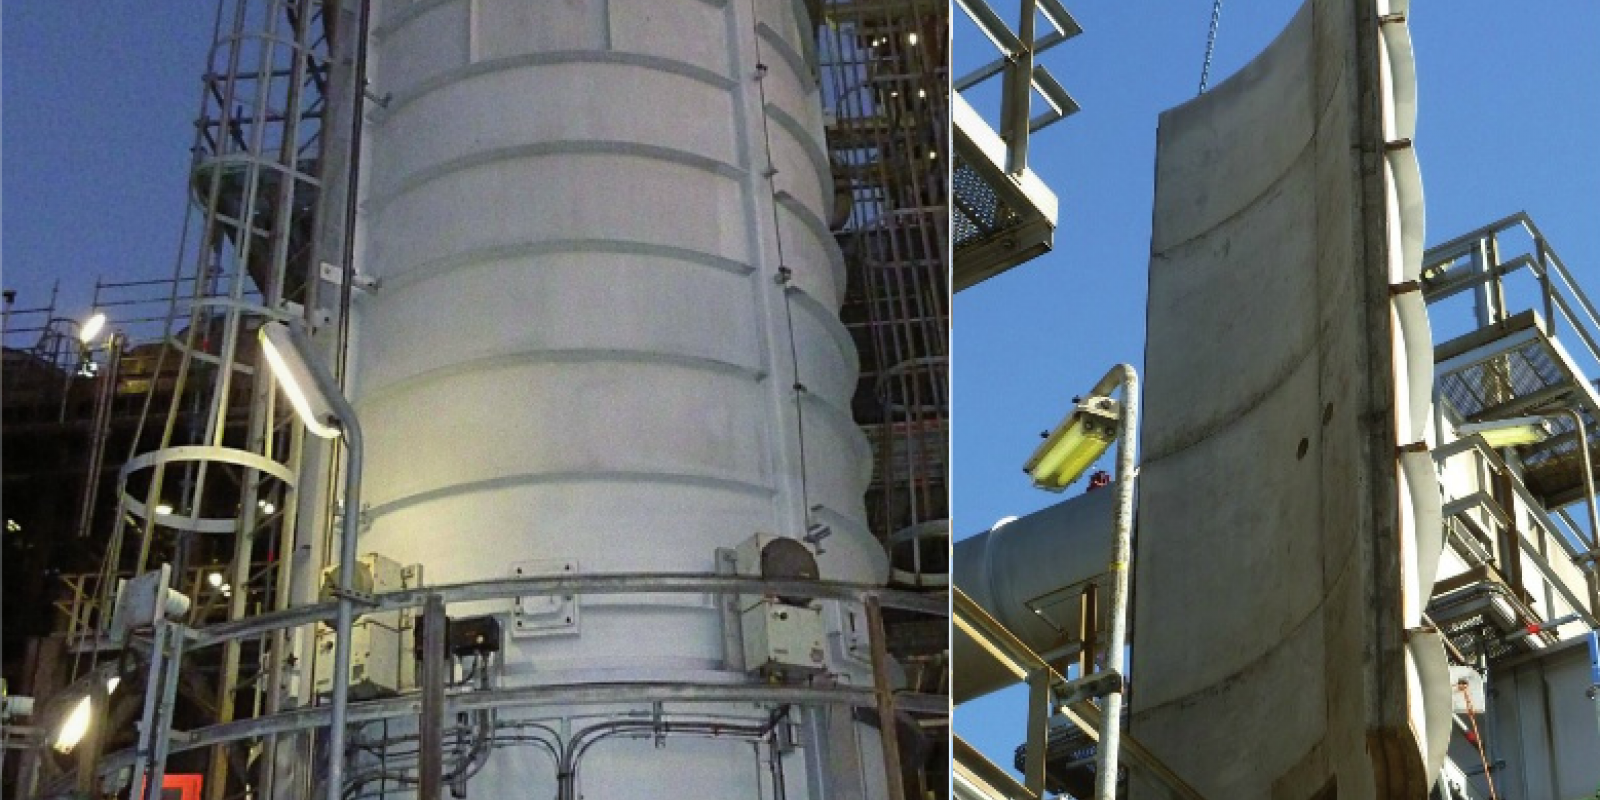 Calderys project services - Furnace and panel at Dutch Oil Refinery